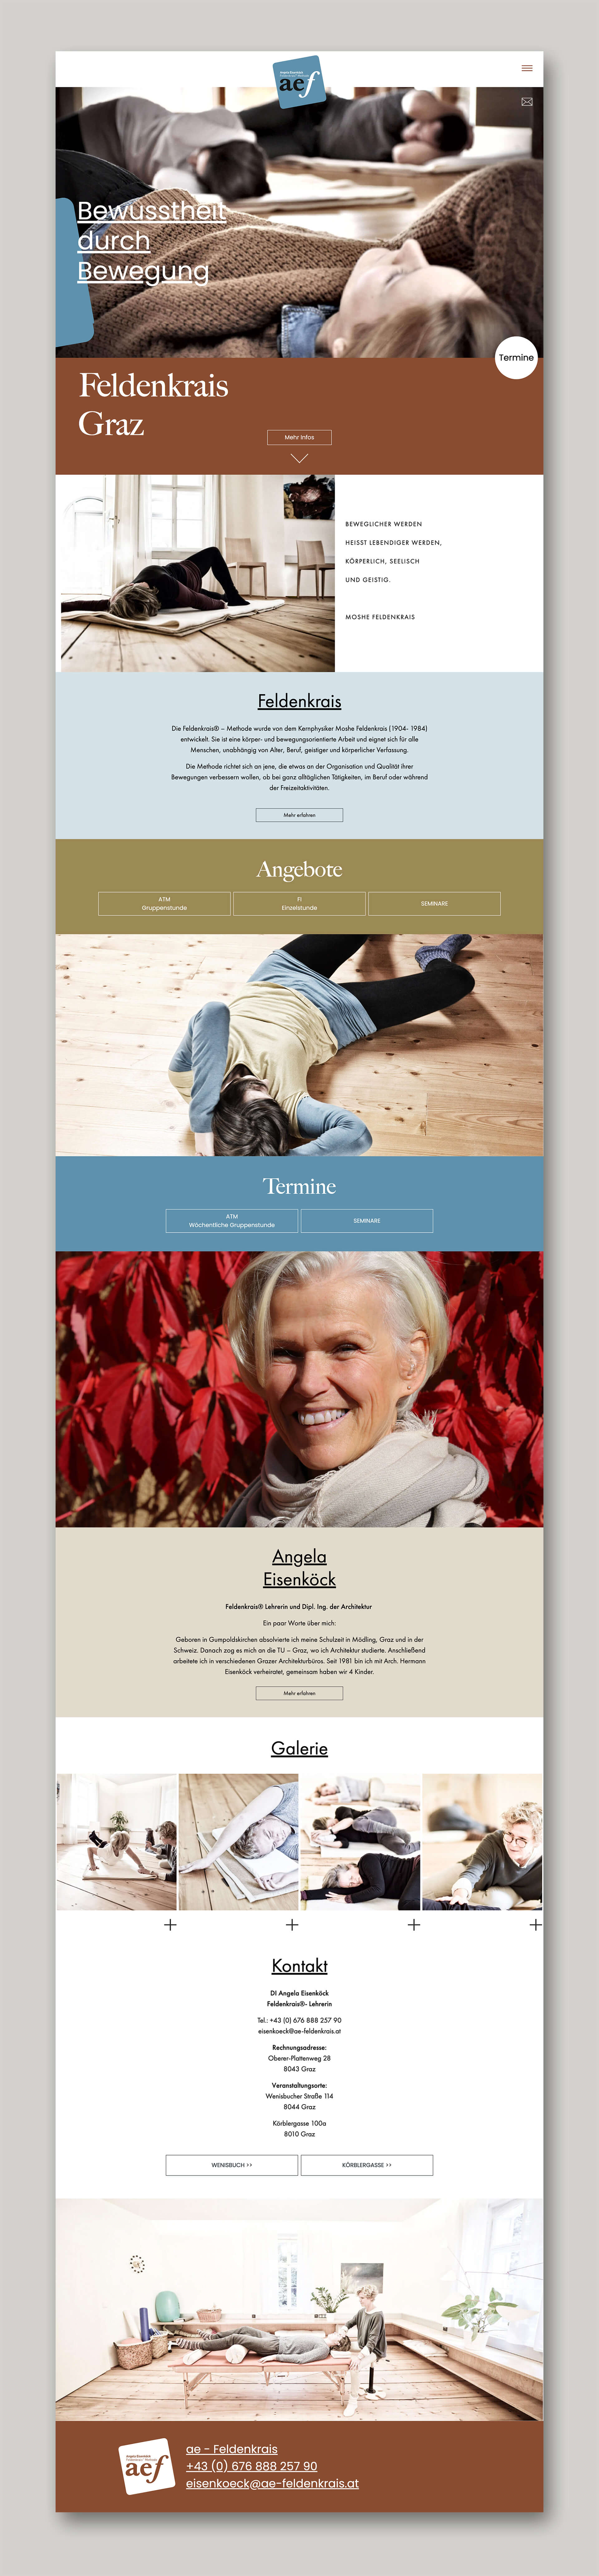 feldenkrais_website